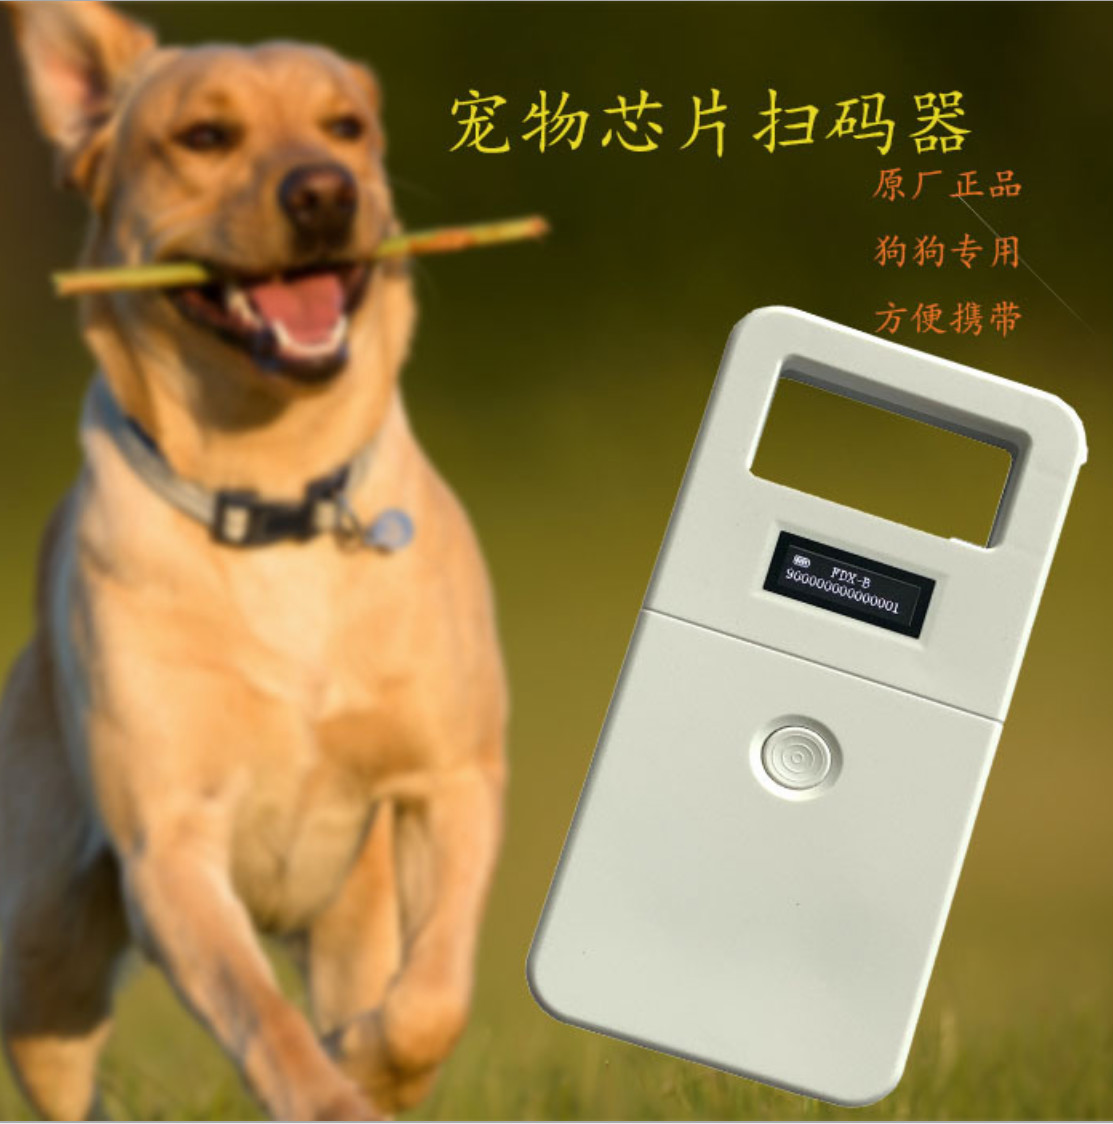 ISO11785/84 FDX-B Pet Microchip Scanner Animal RFID Tag Reader Dog Reader Low Frequency Handheld RFID Reader With Animal Chip